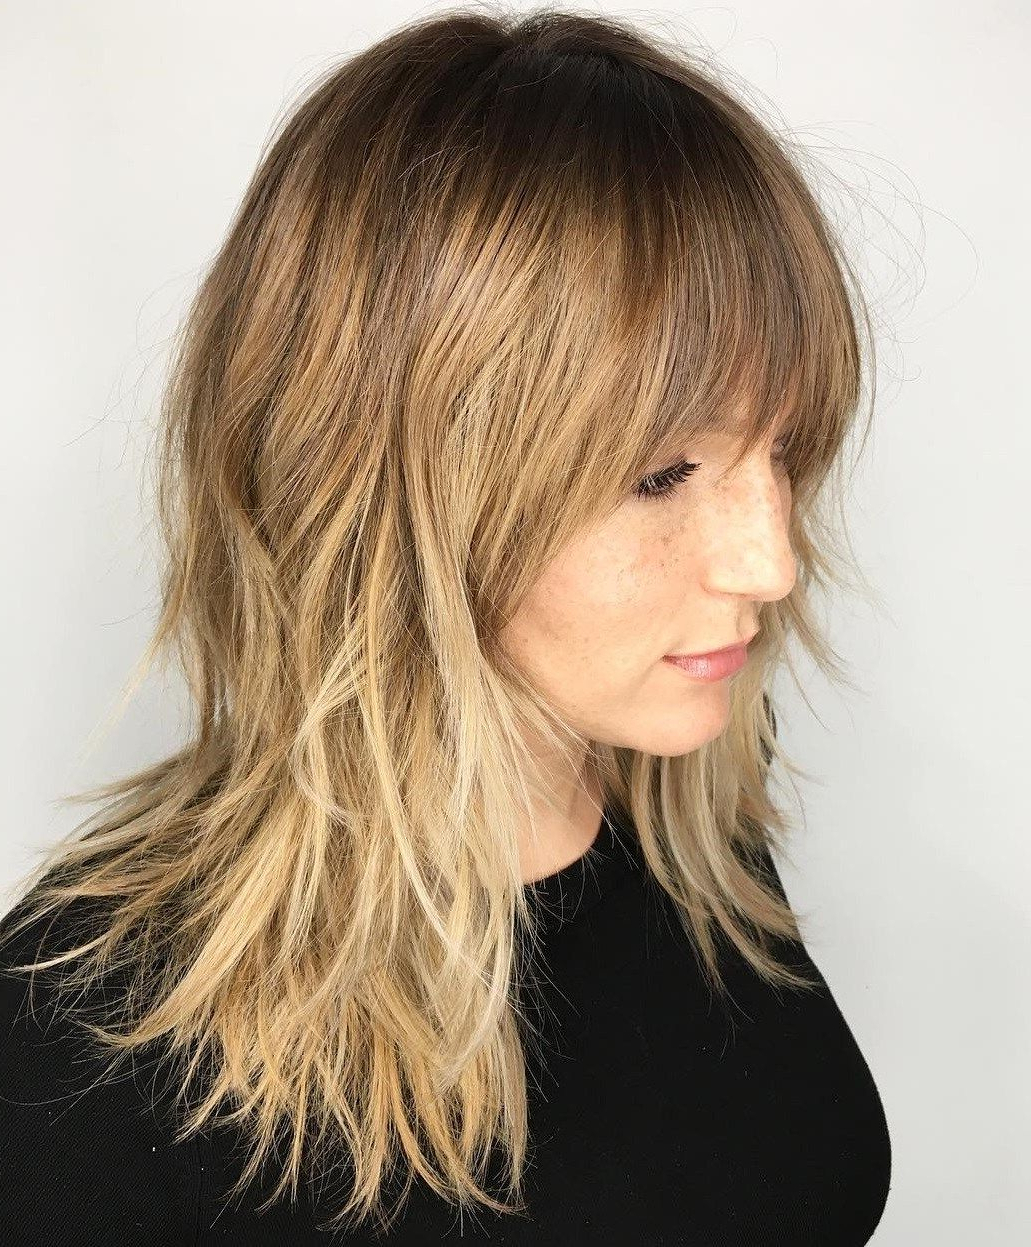 60 Lovely Long Shag Haircuts For Effortless Stylish Looks Pertaining To Well Known Golden Bronde Razored Shag Haircuts For Long Hair (View 3 of 20)